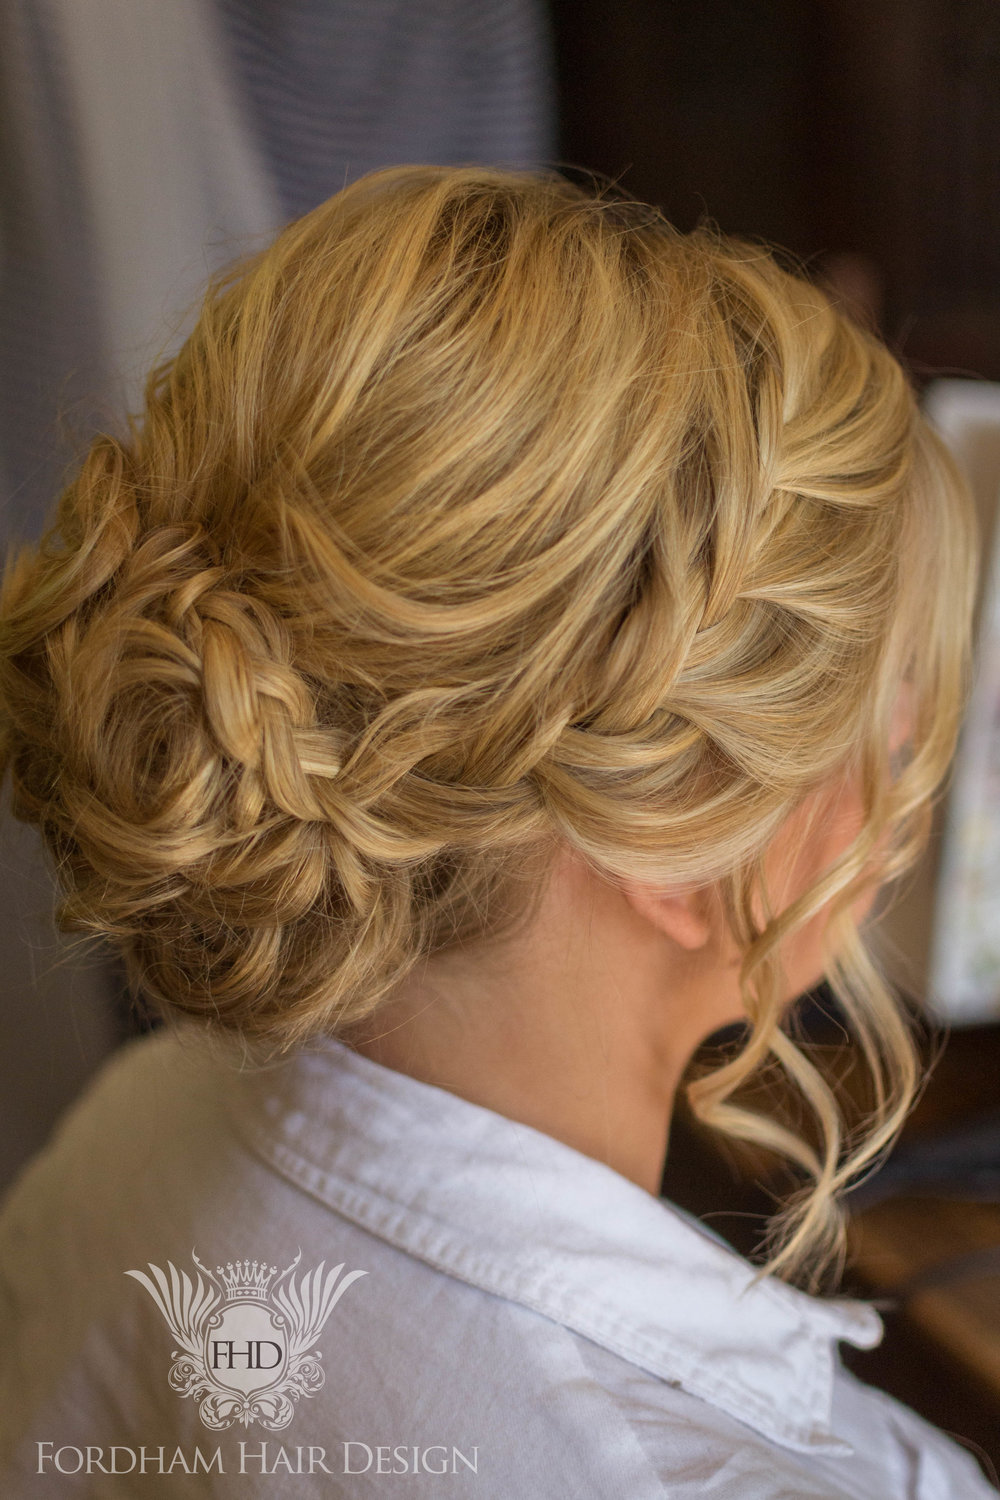 Plait updo wedding hair